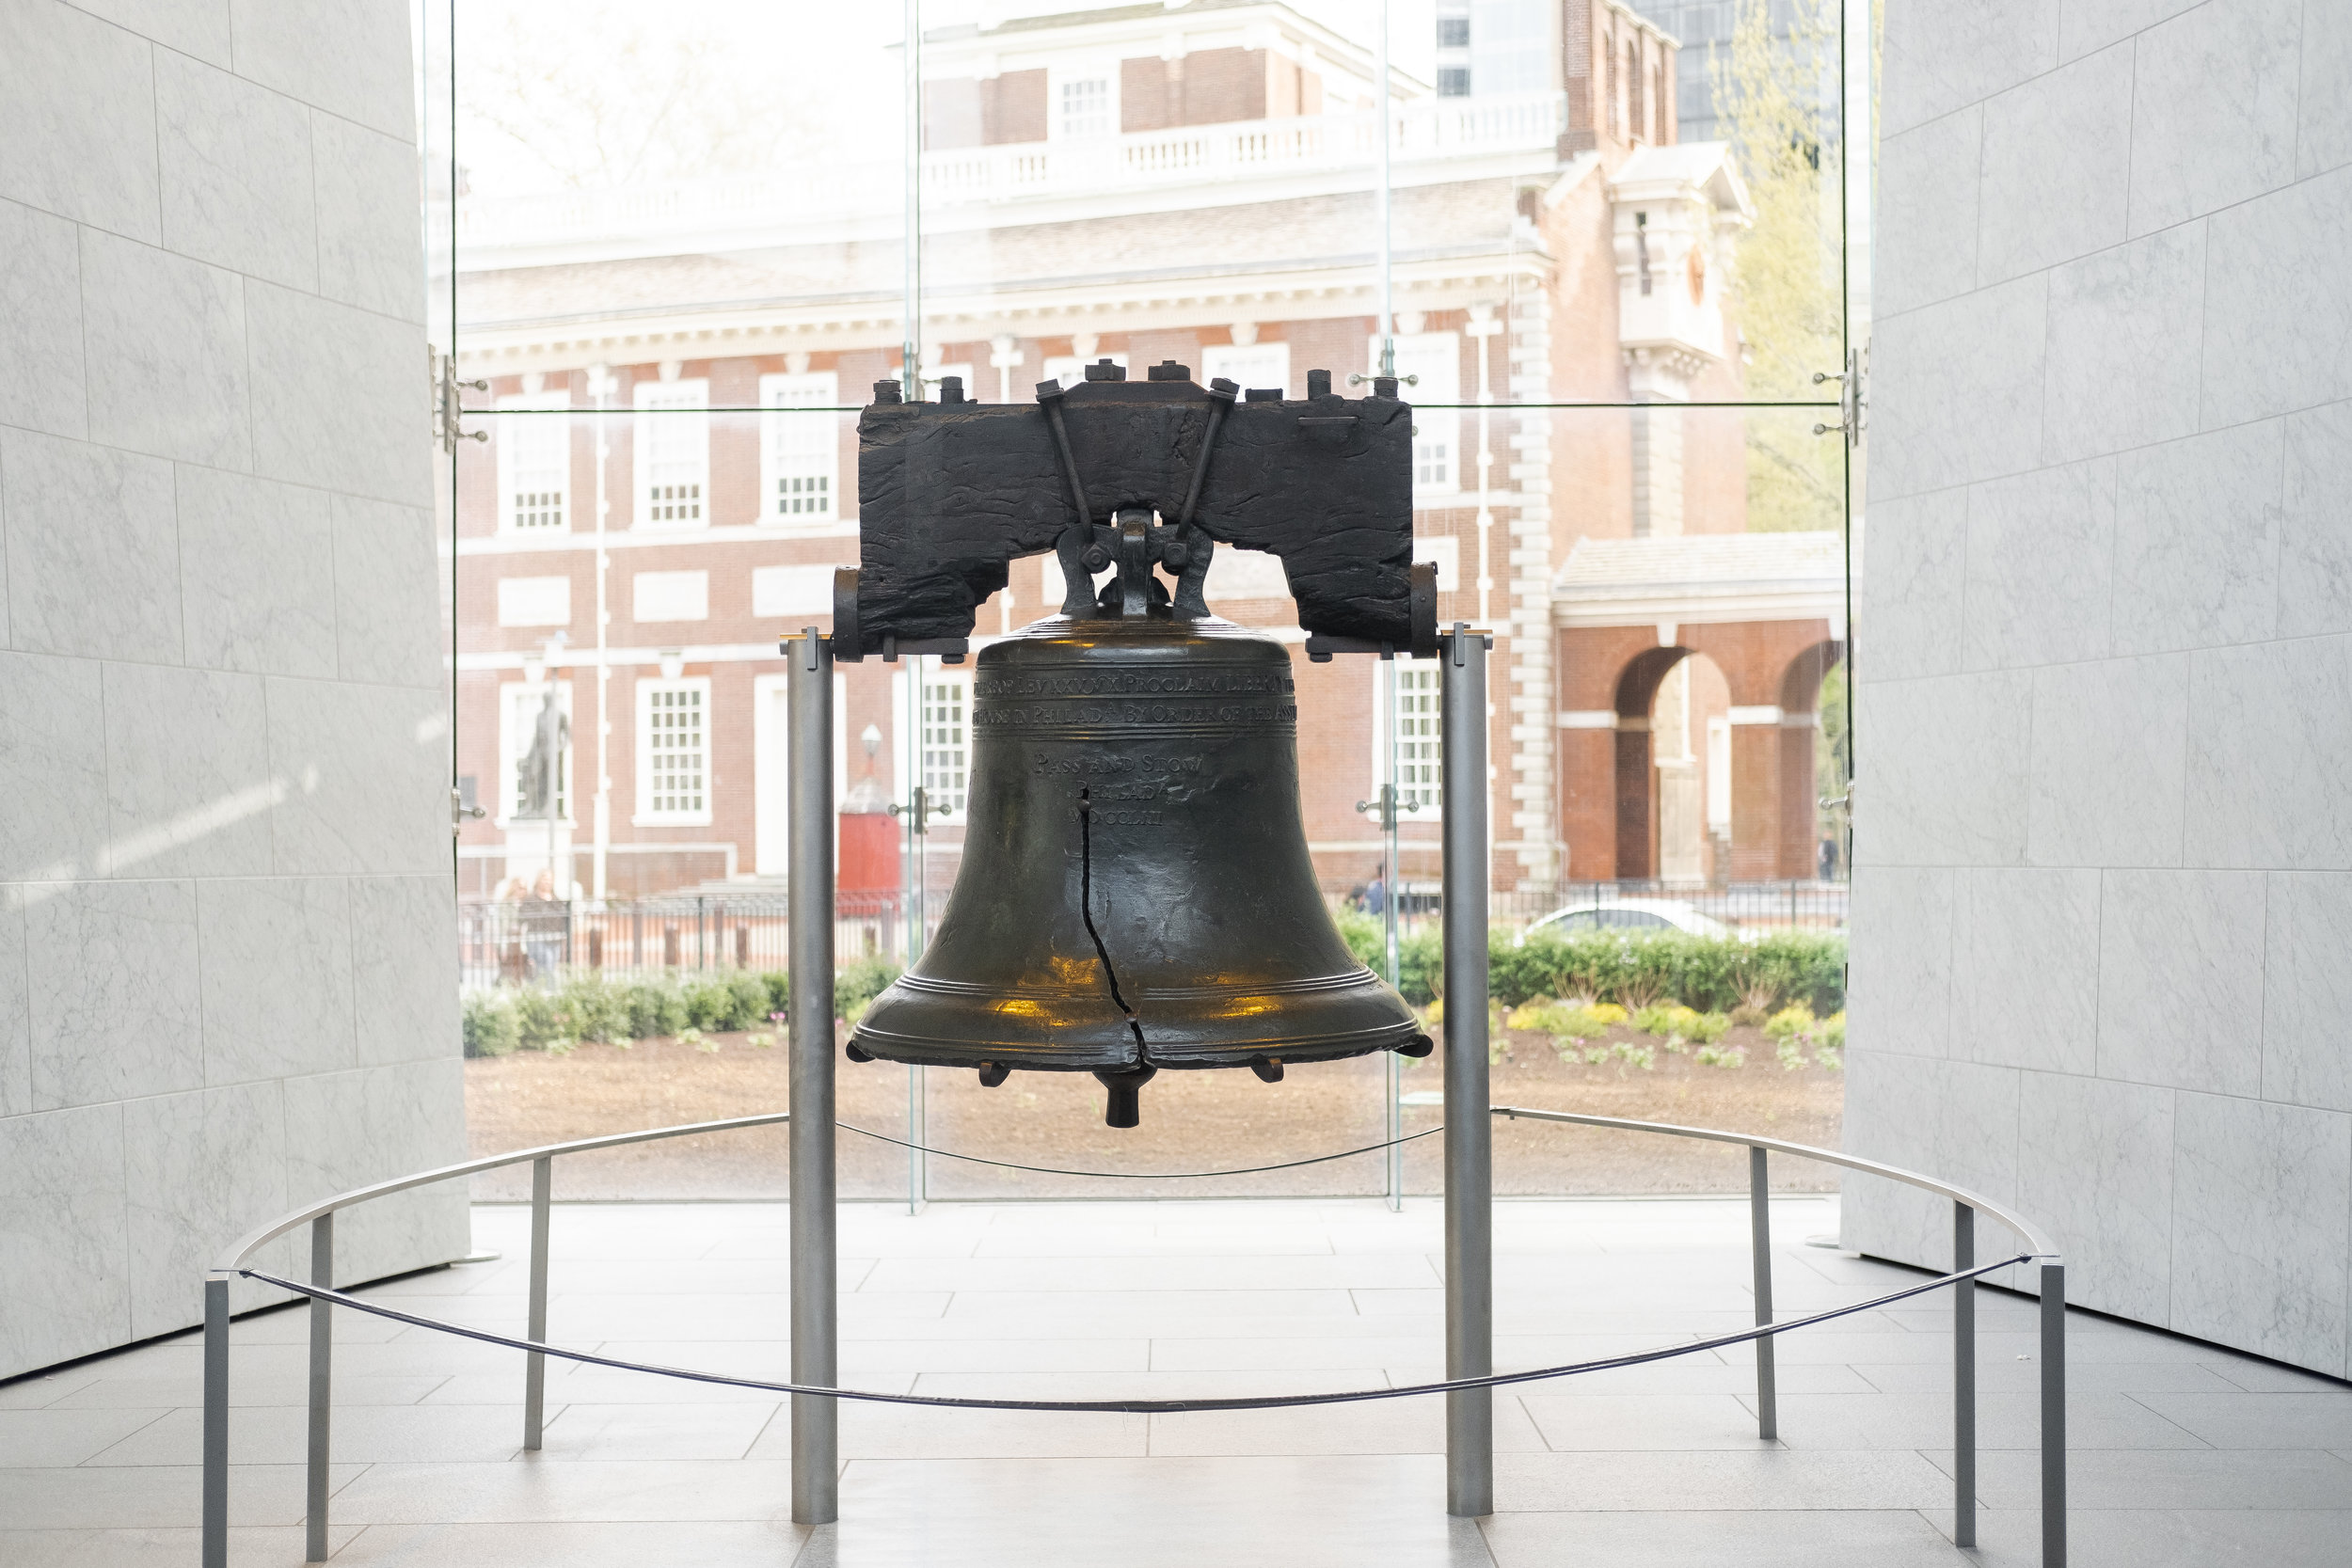 2019_LIBERTY BELL_THE PHILLY CHECKLIST_FINAL-14.jpg